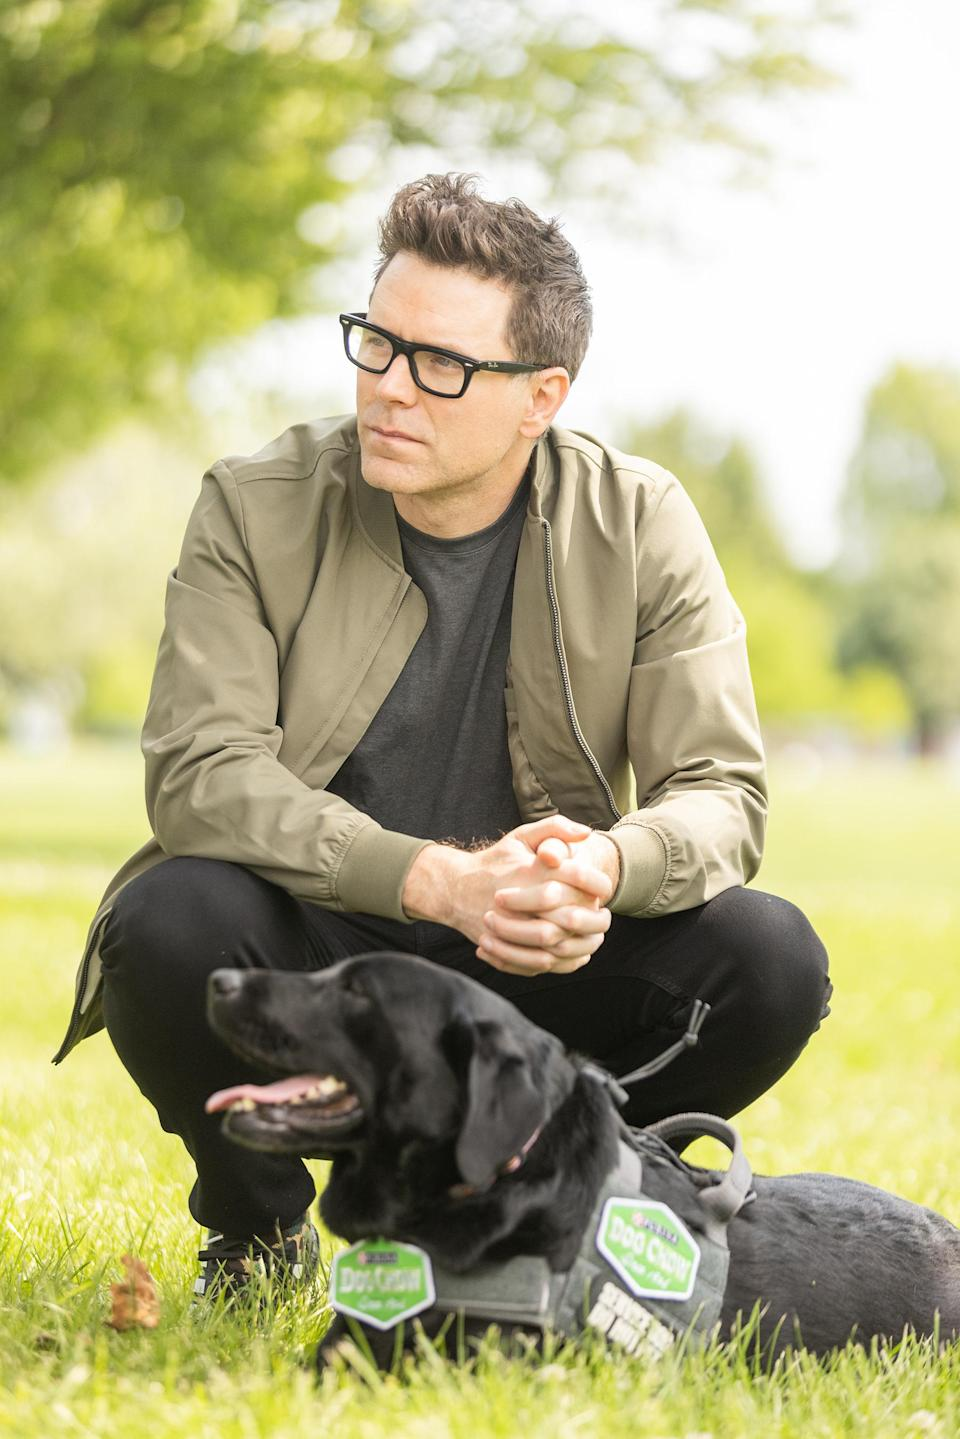 Dog Chow partner and TV / radio personality Bobby Bones participates in the fourth annual Dog Chow Service Dog Salute campaign